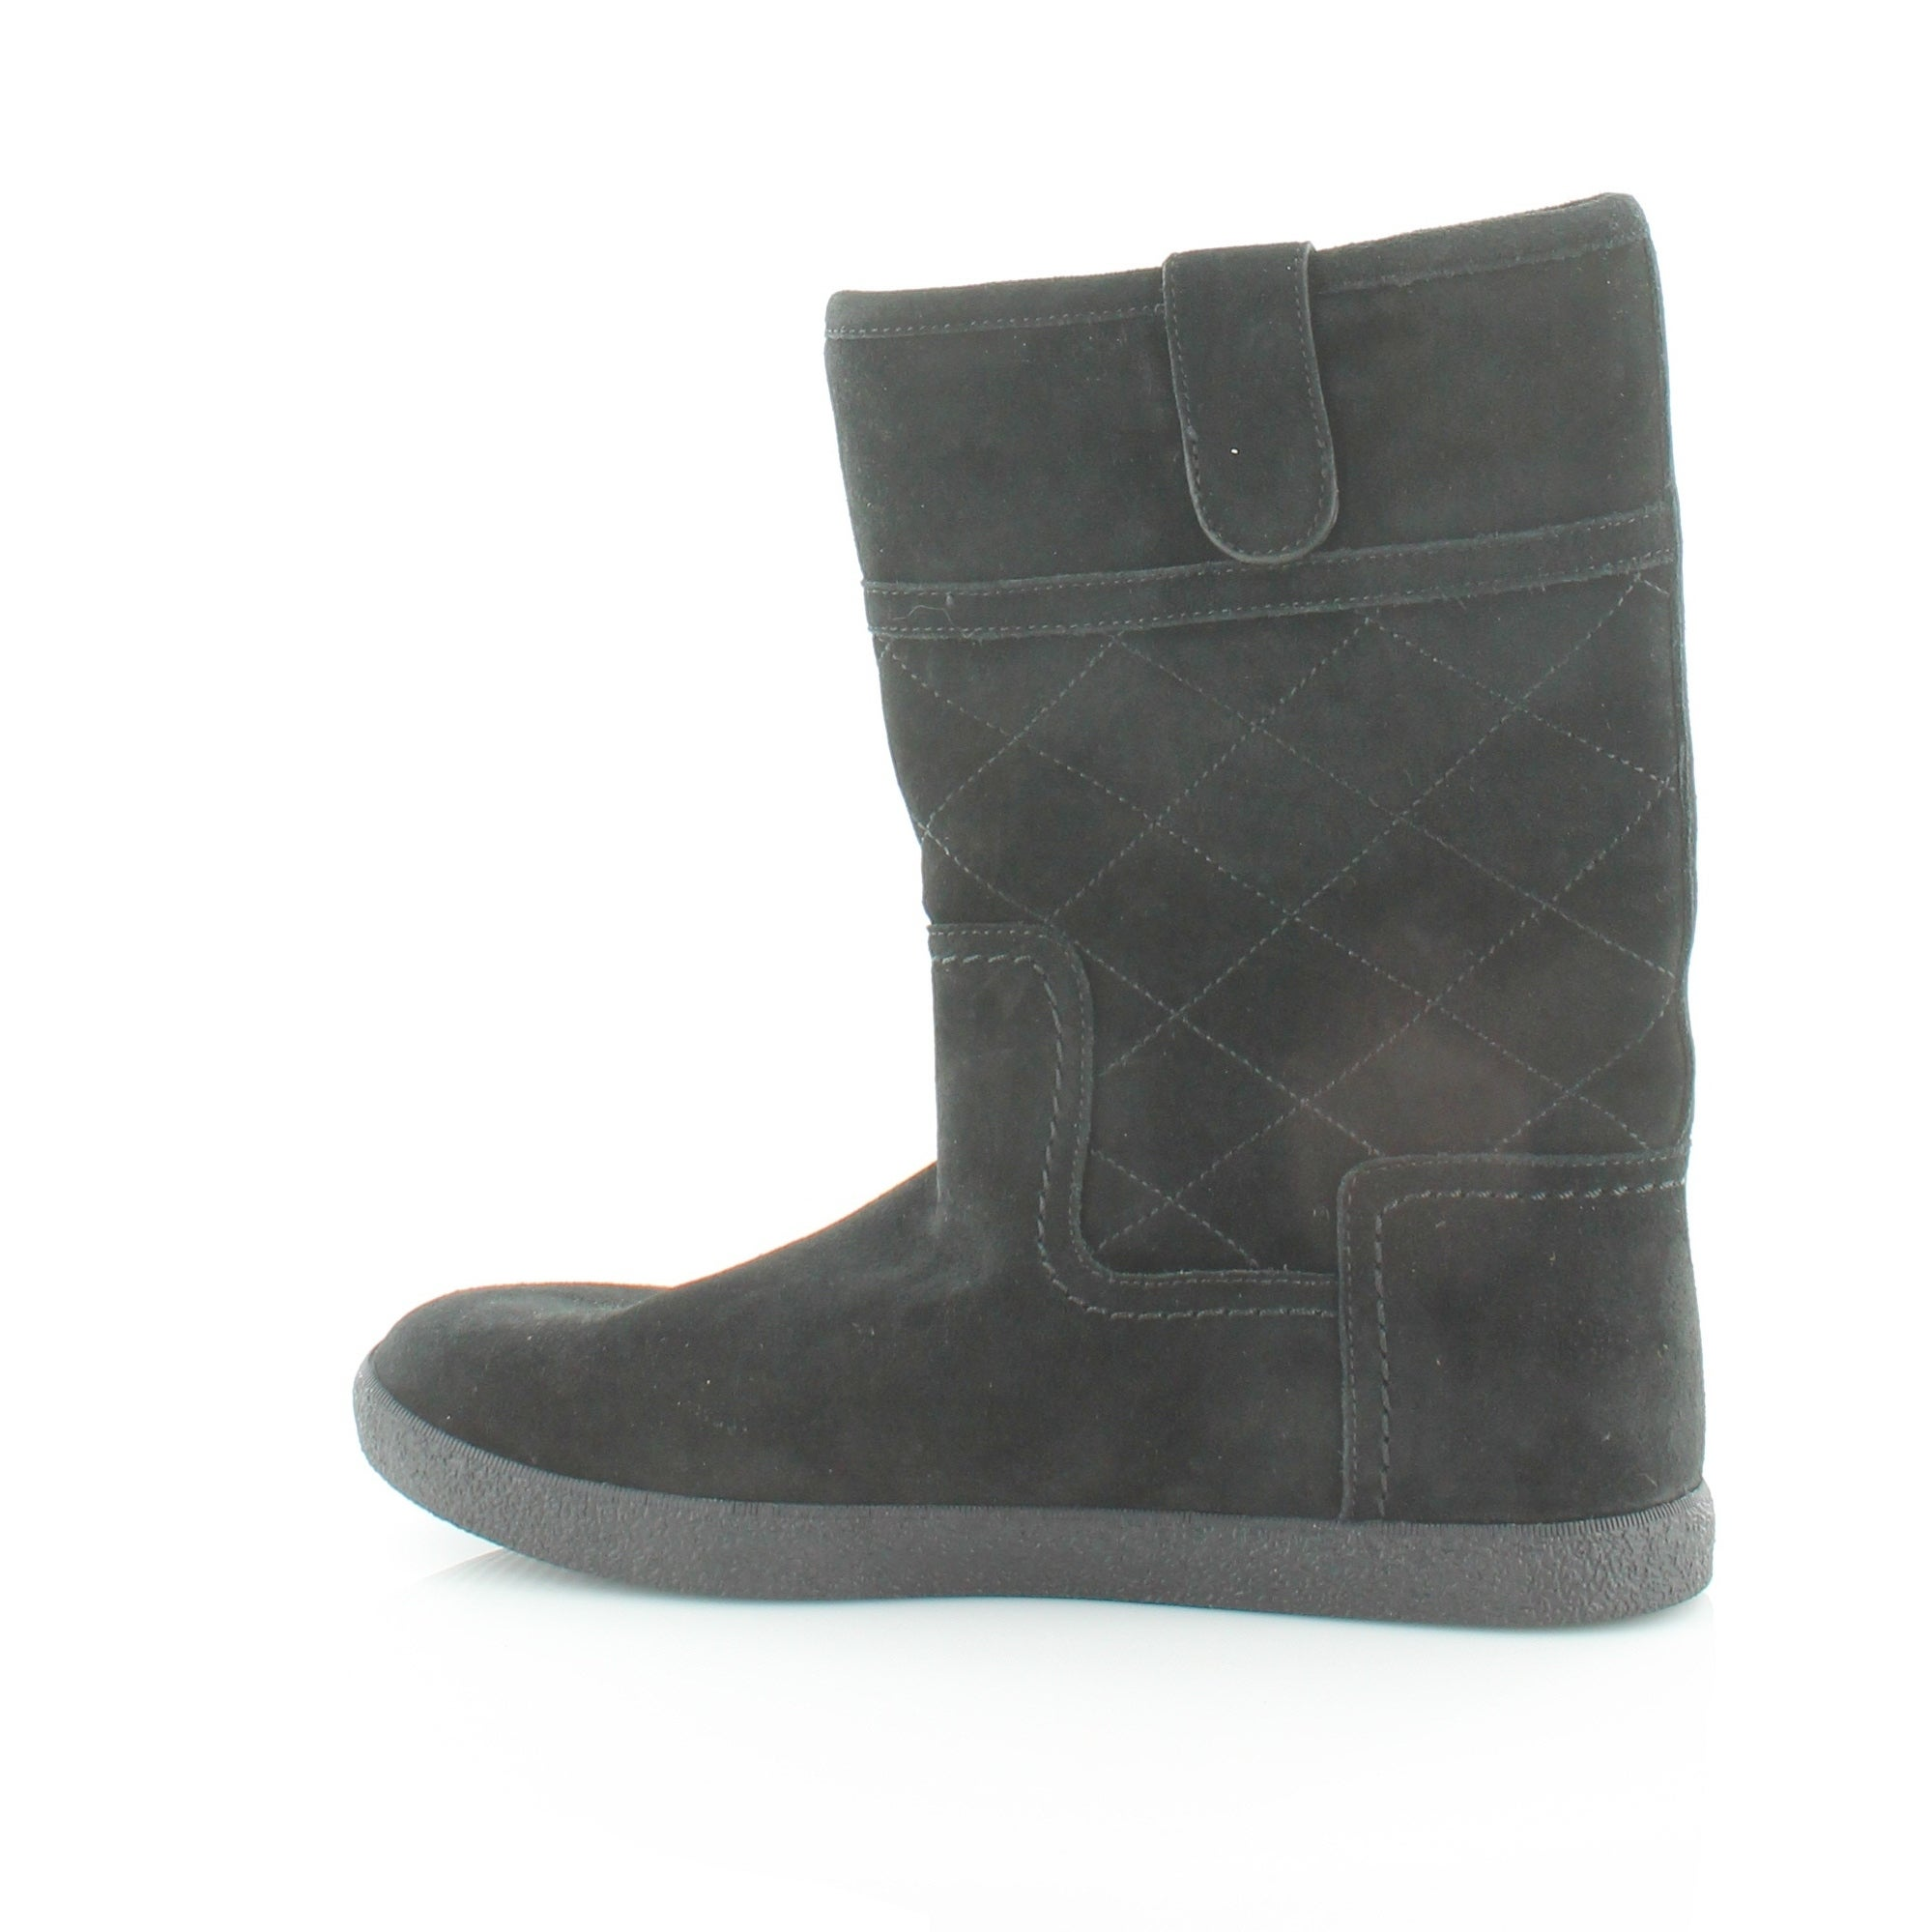 26a861f6d9b Shop Tory Burch Alana Women s Boots Black - 7 - Free Shipping Today -  Overstock - 21550440